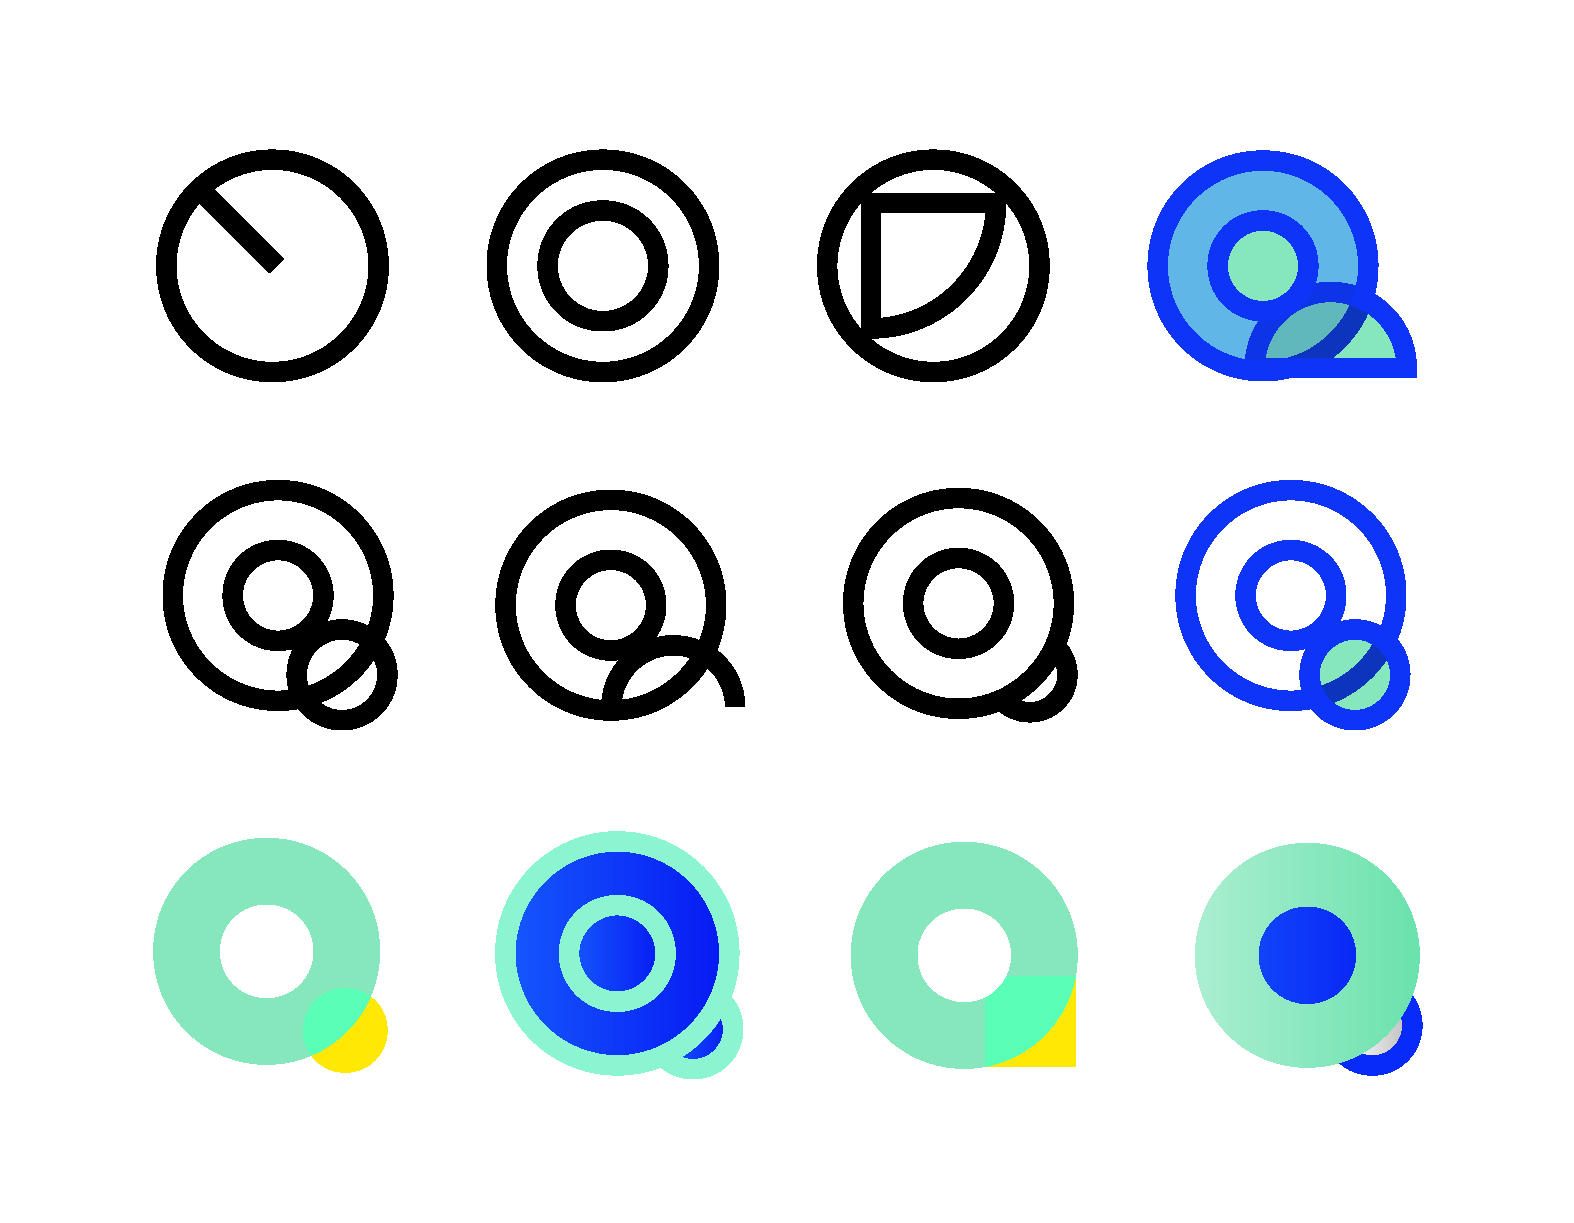 Different circular representation of the letter Q